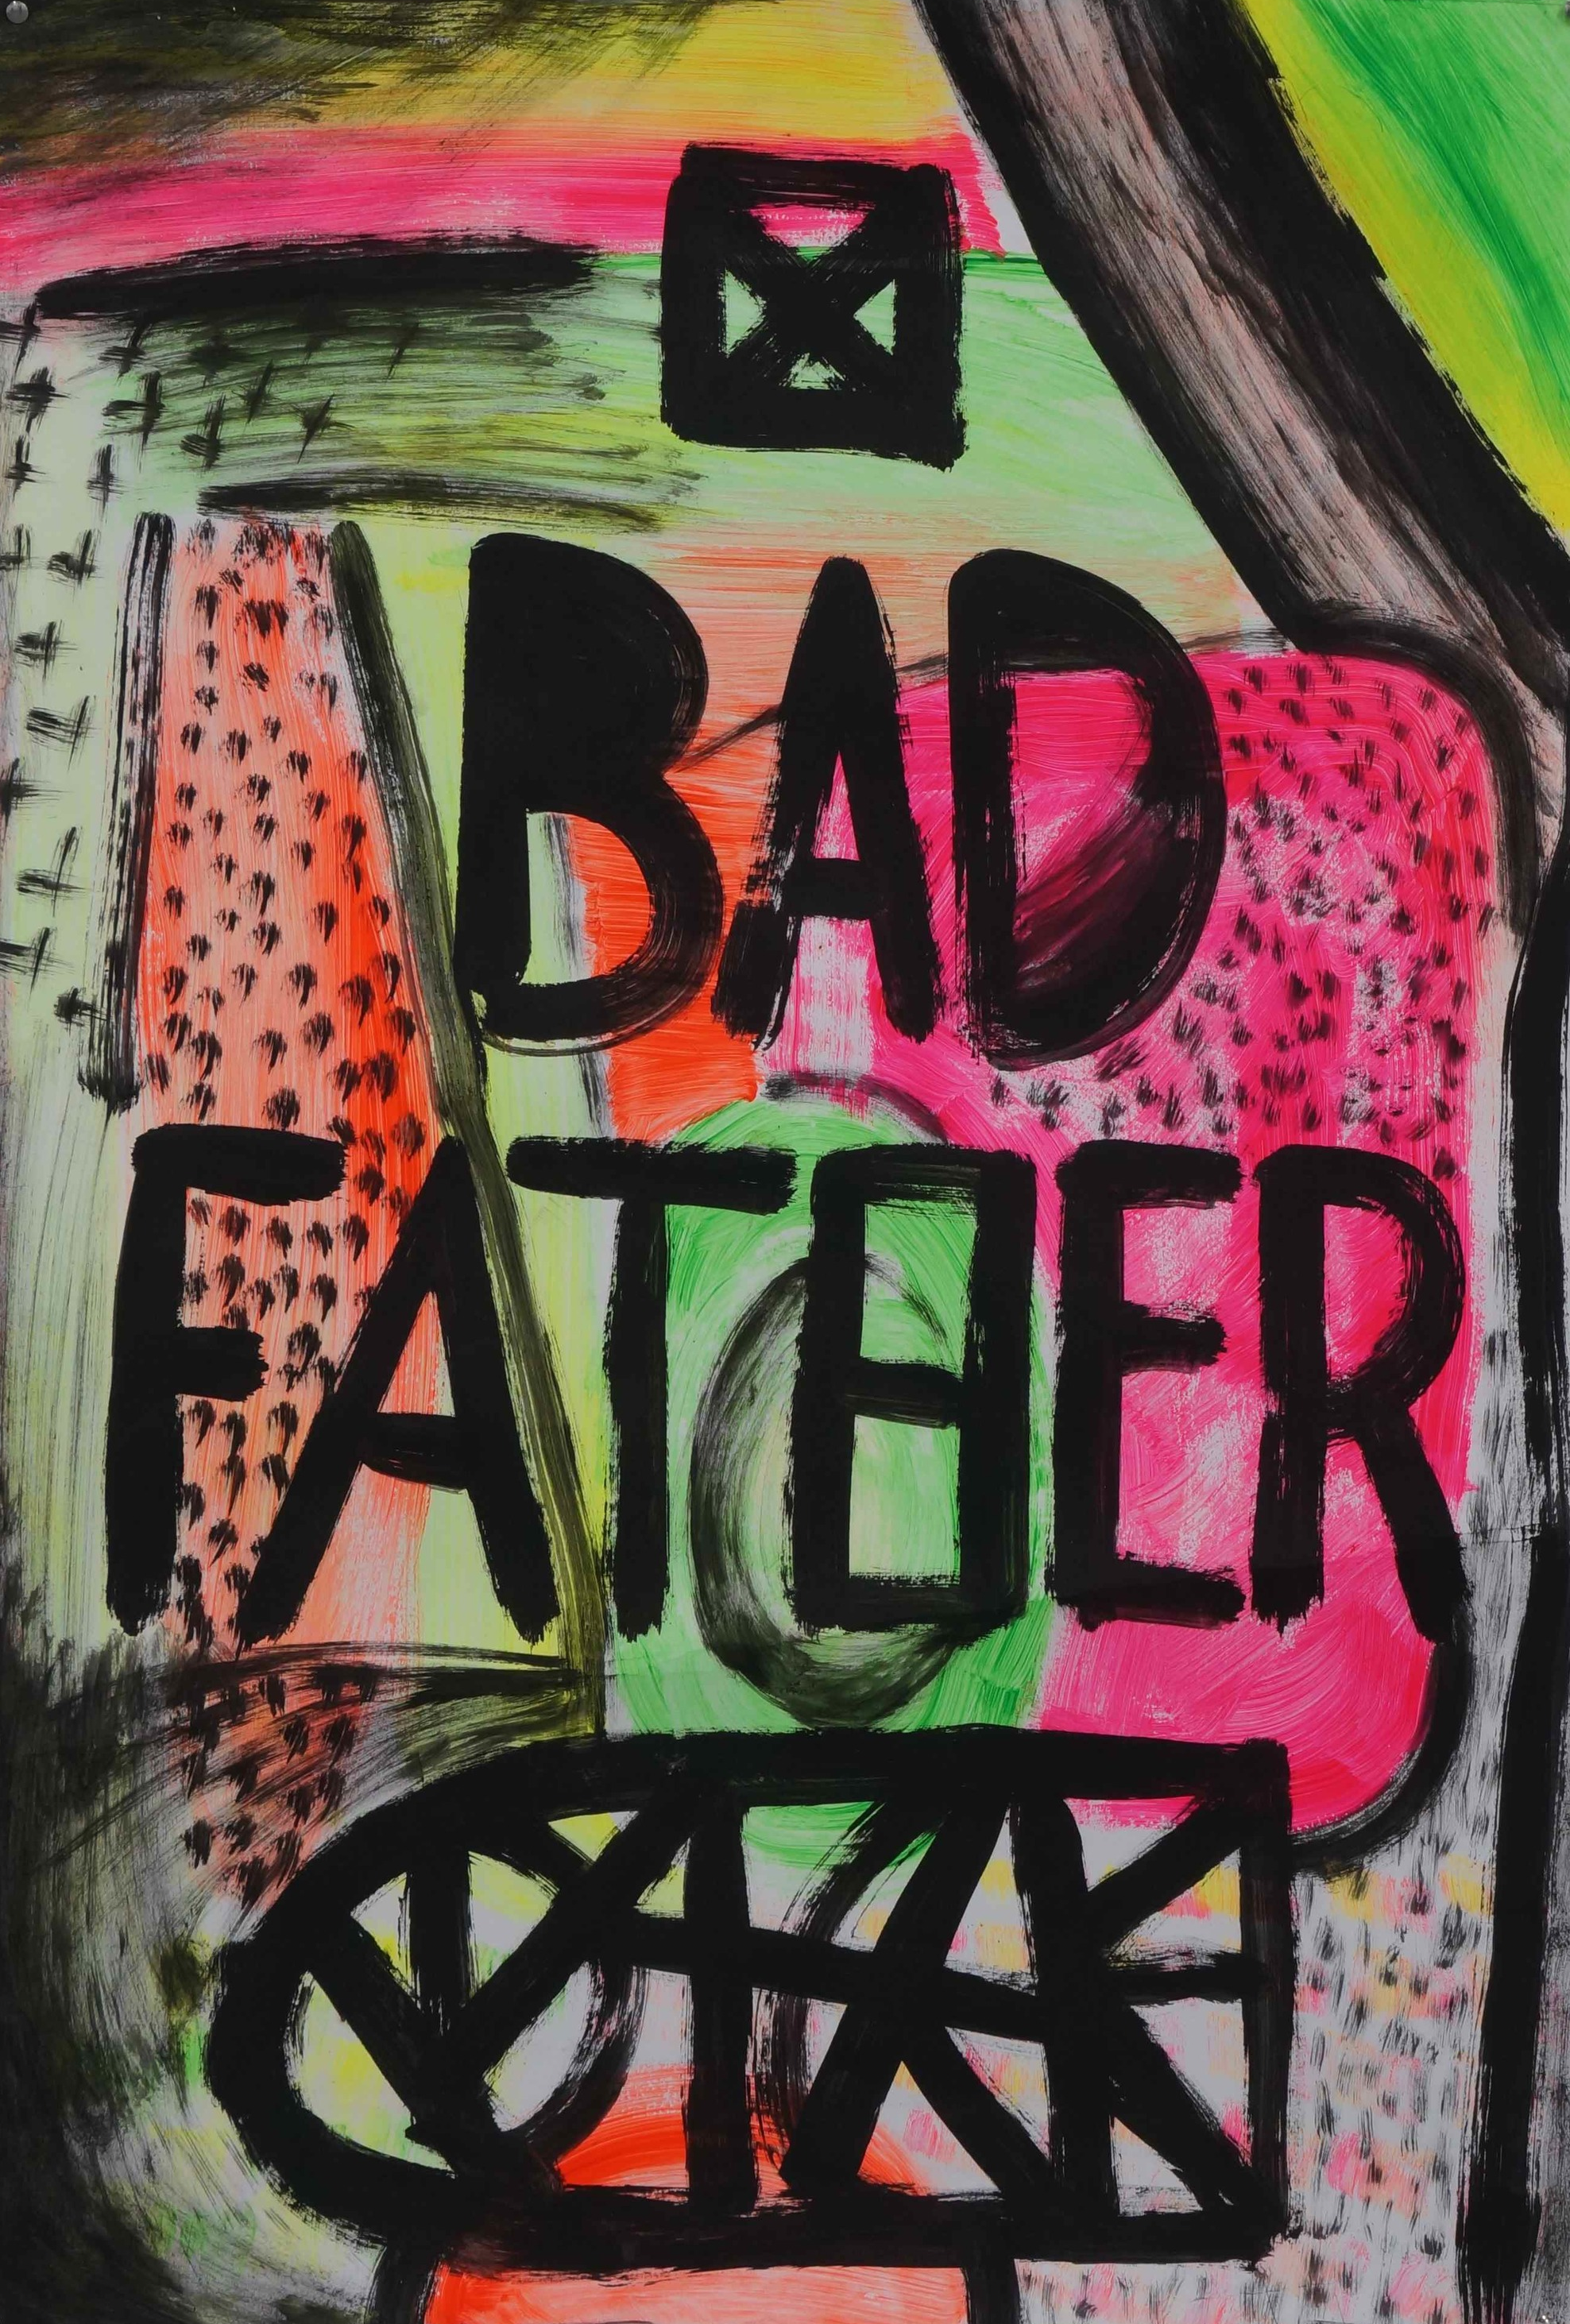 Bad father  acrylic and oil on Magnani paper  76 x 110 cm